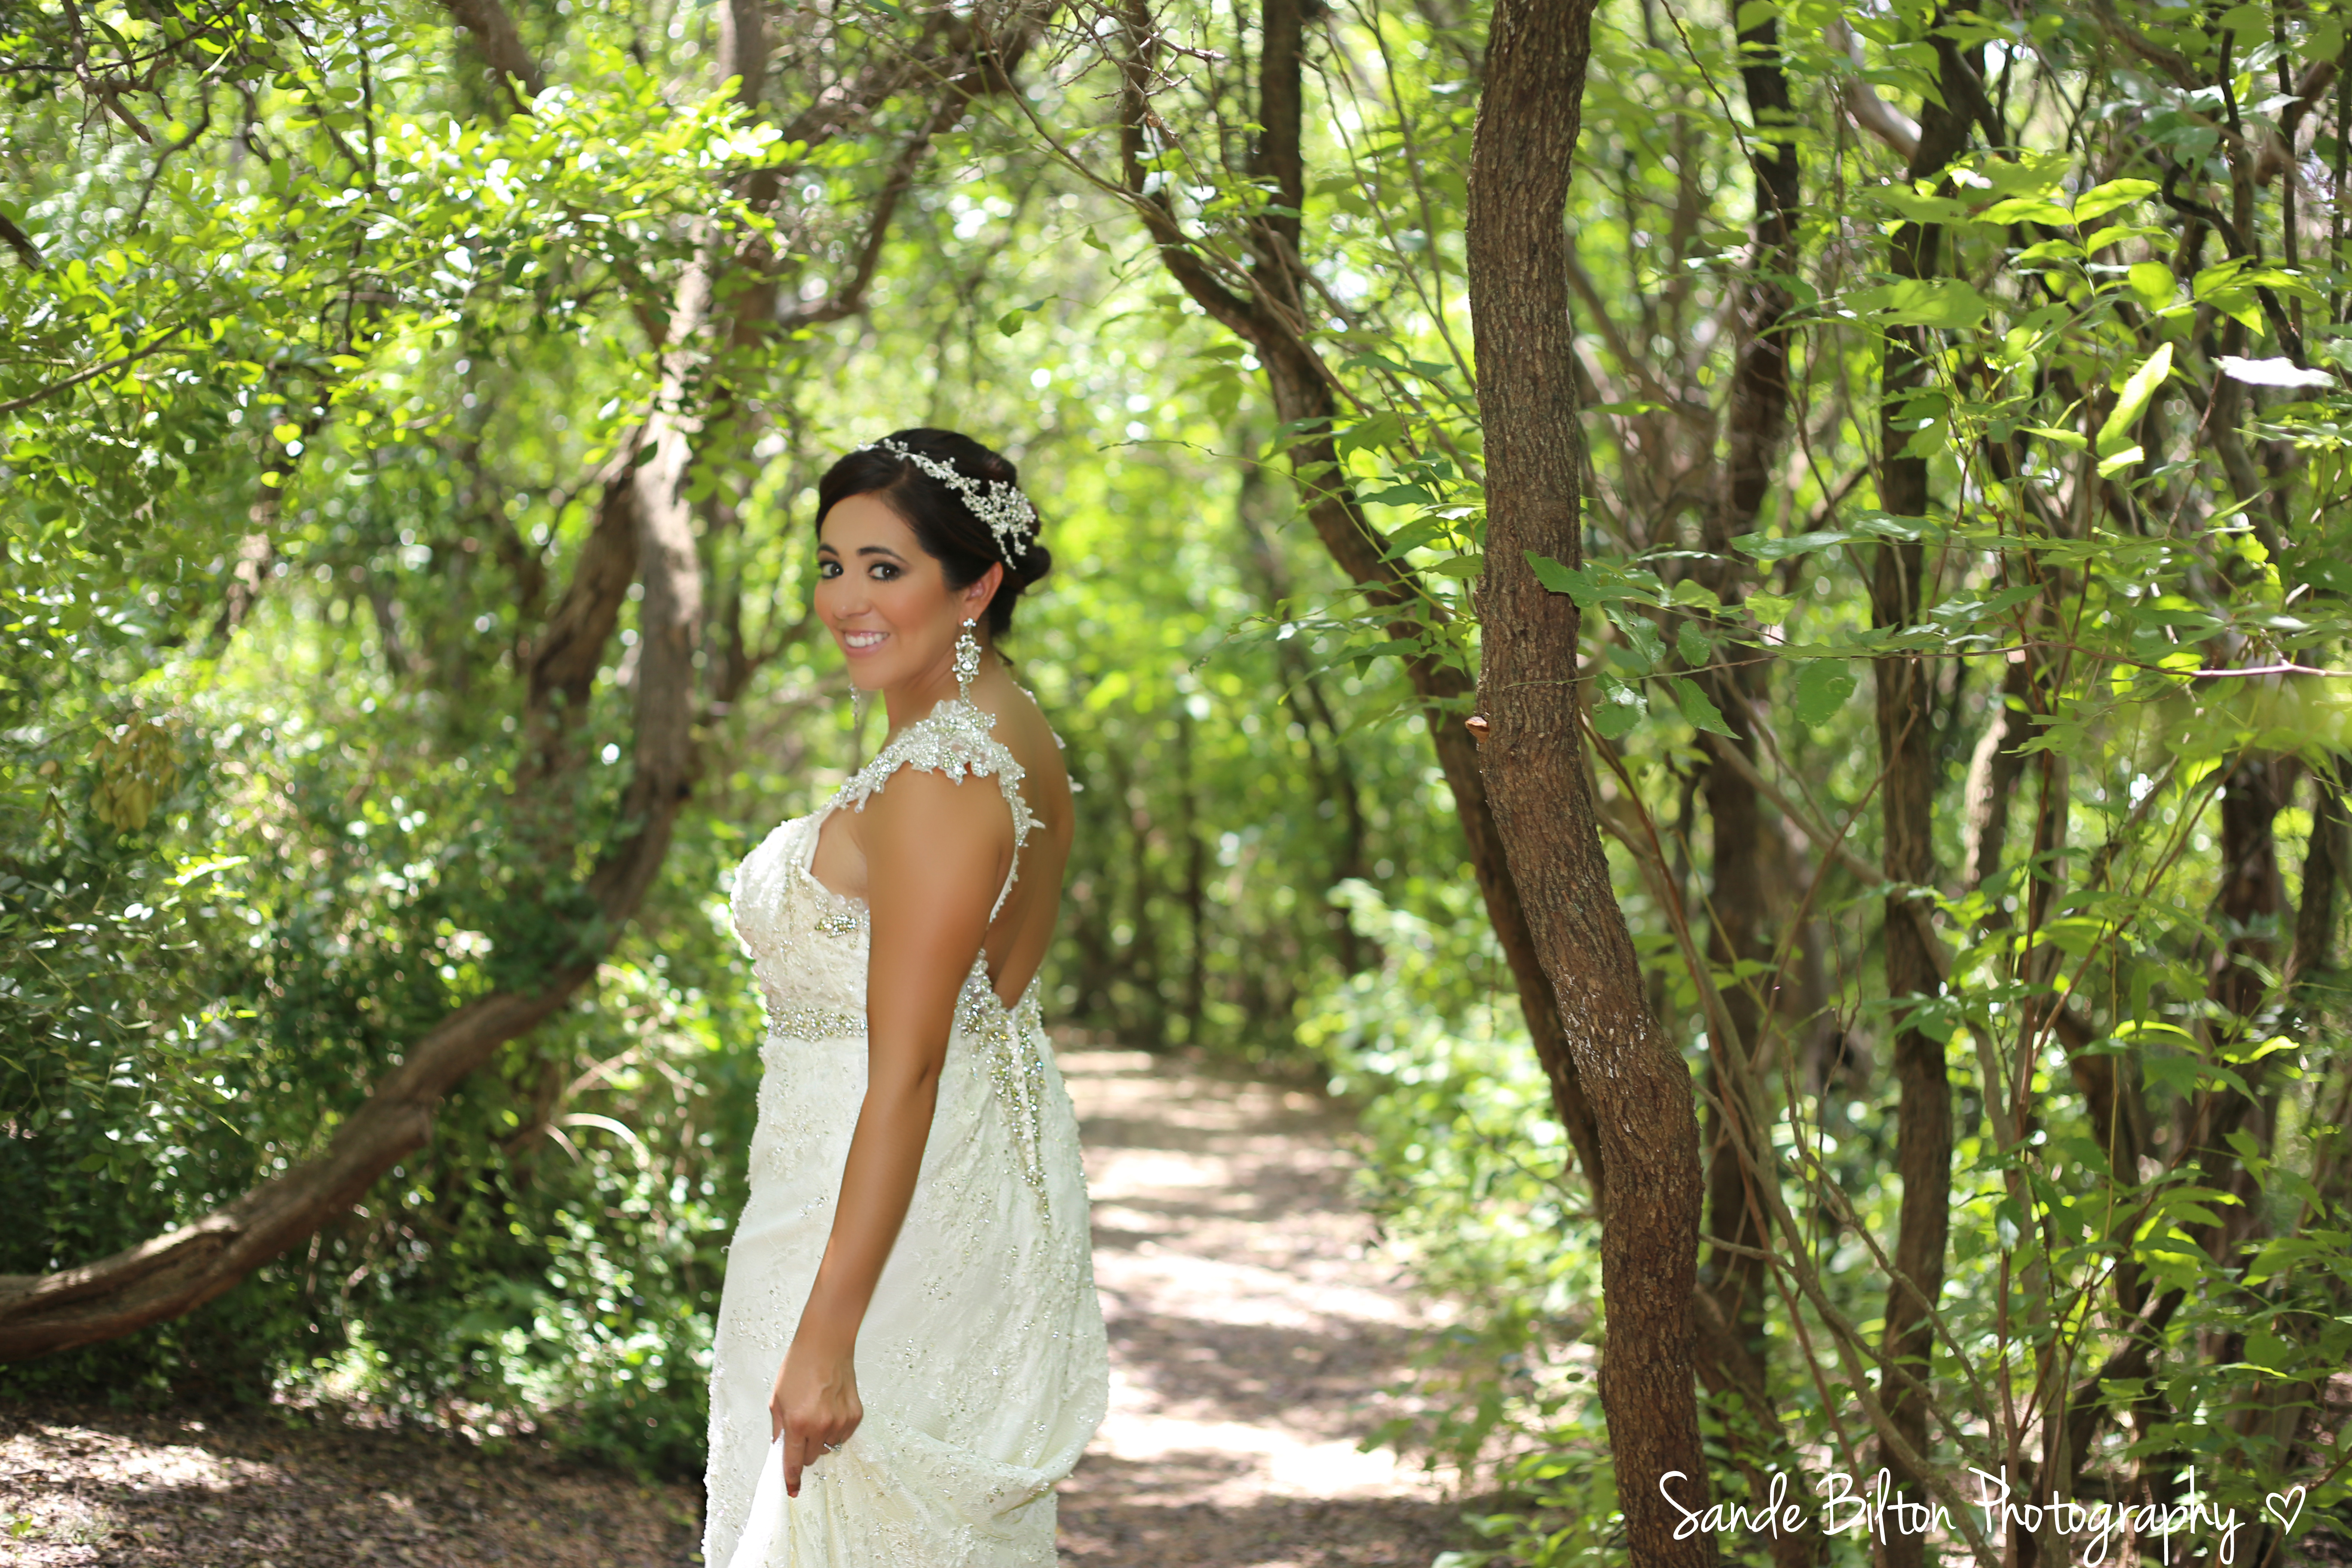 Bridal Photo ShootG_4510.jpg